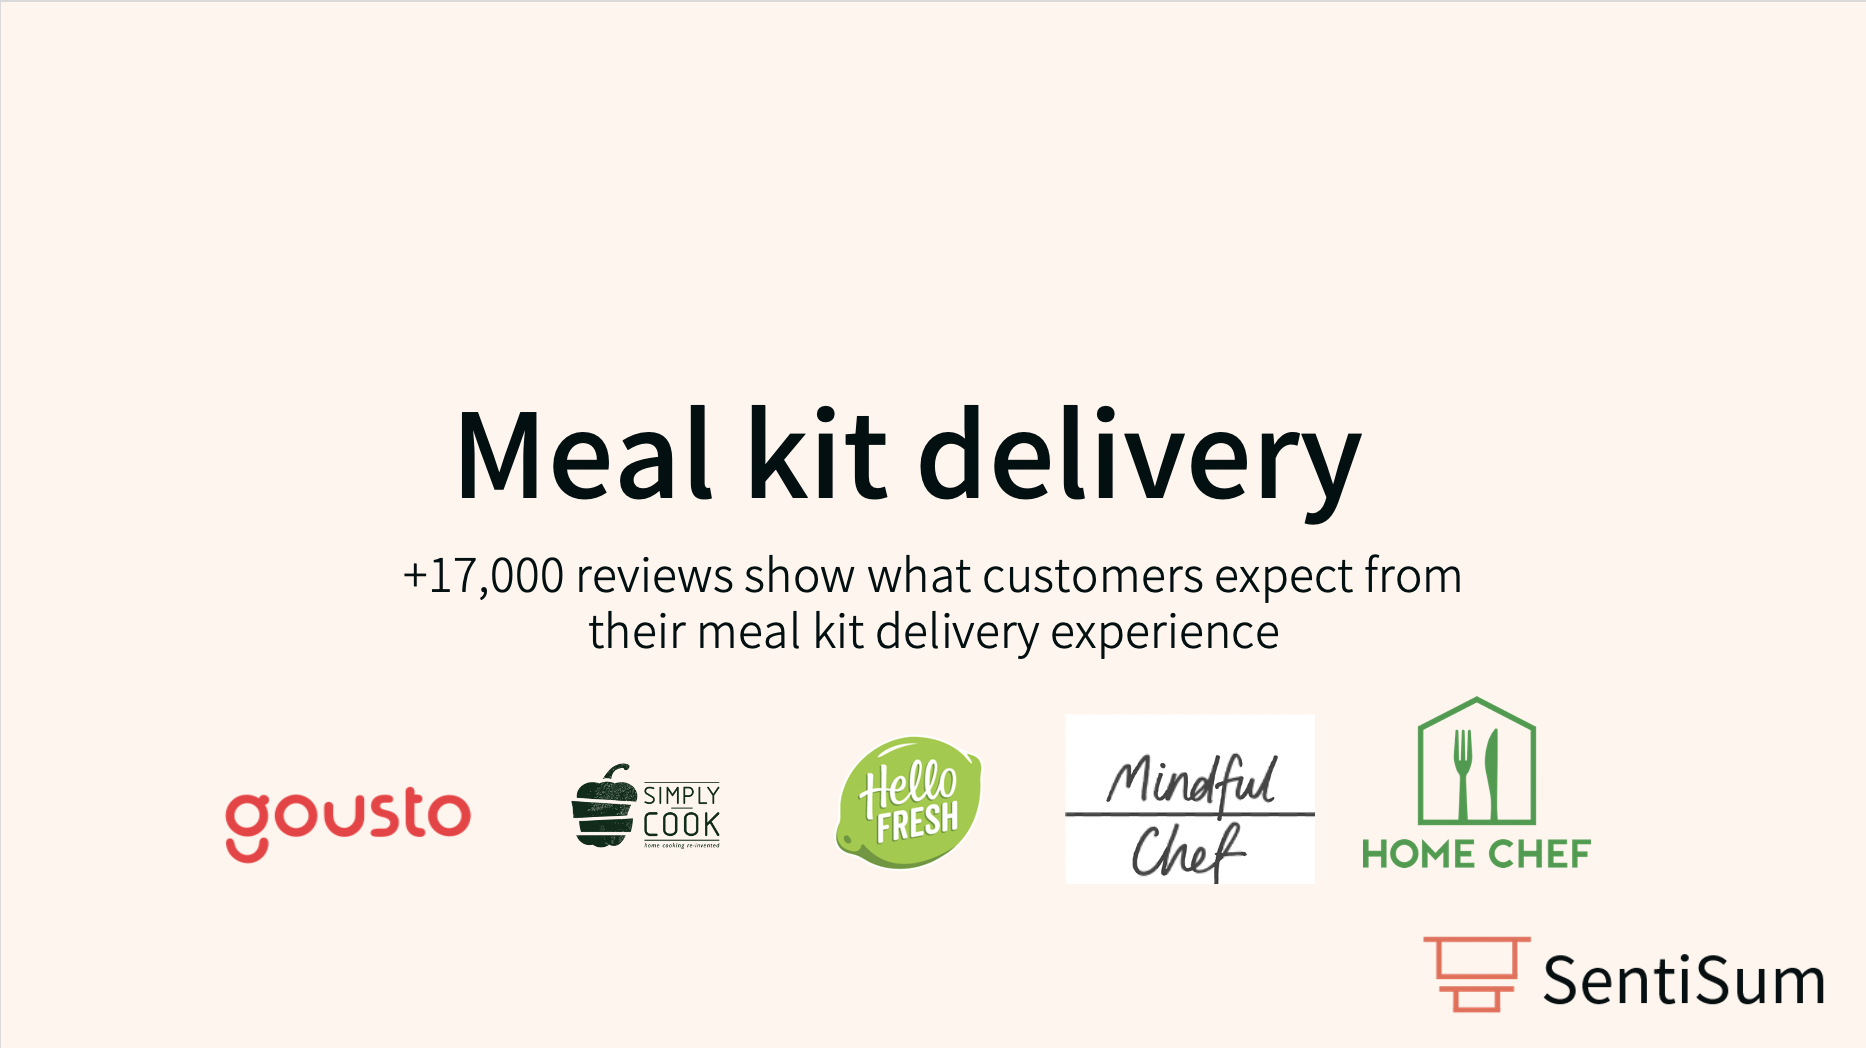 Meal Kit Delivery: Customer review sentiment analysis, 2020